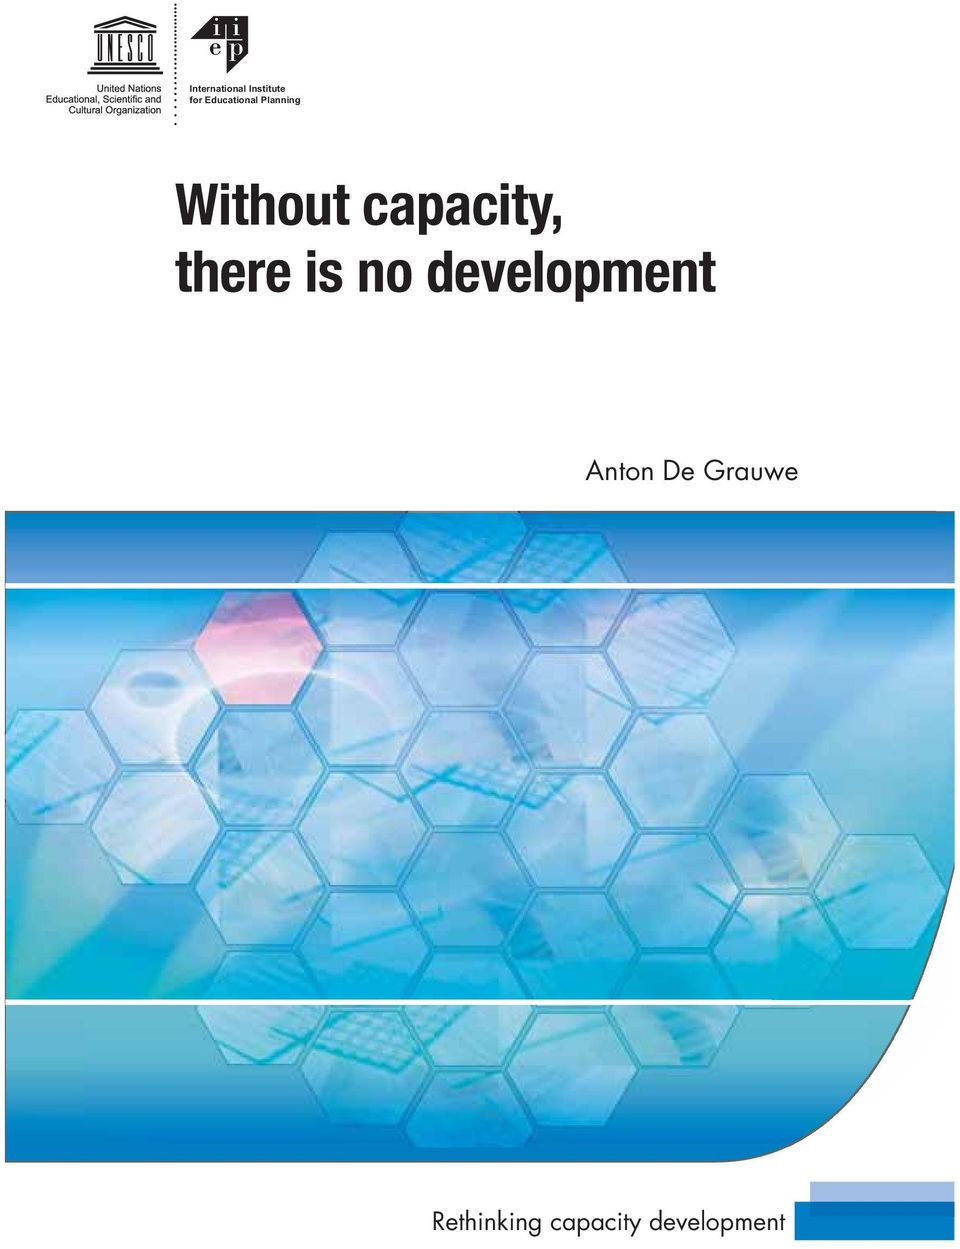 capacity, there is no development